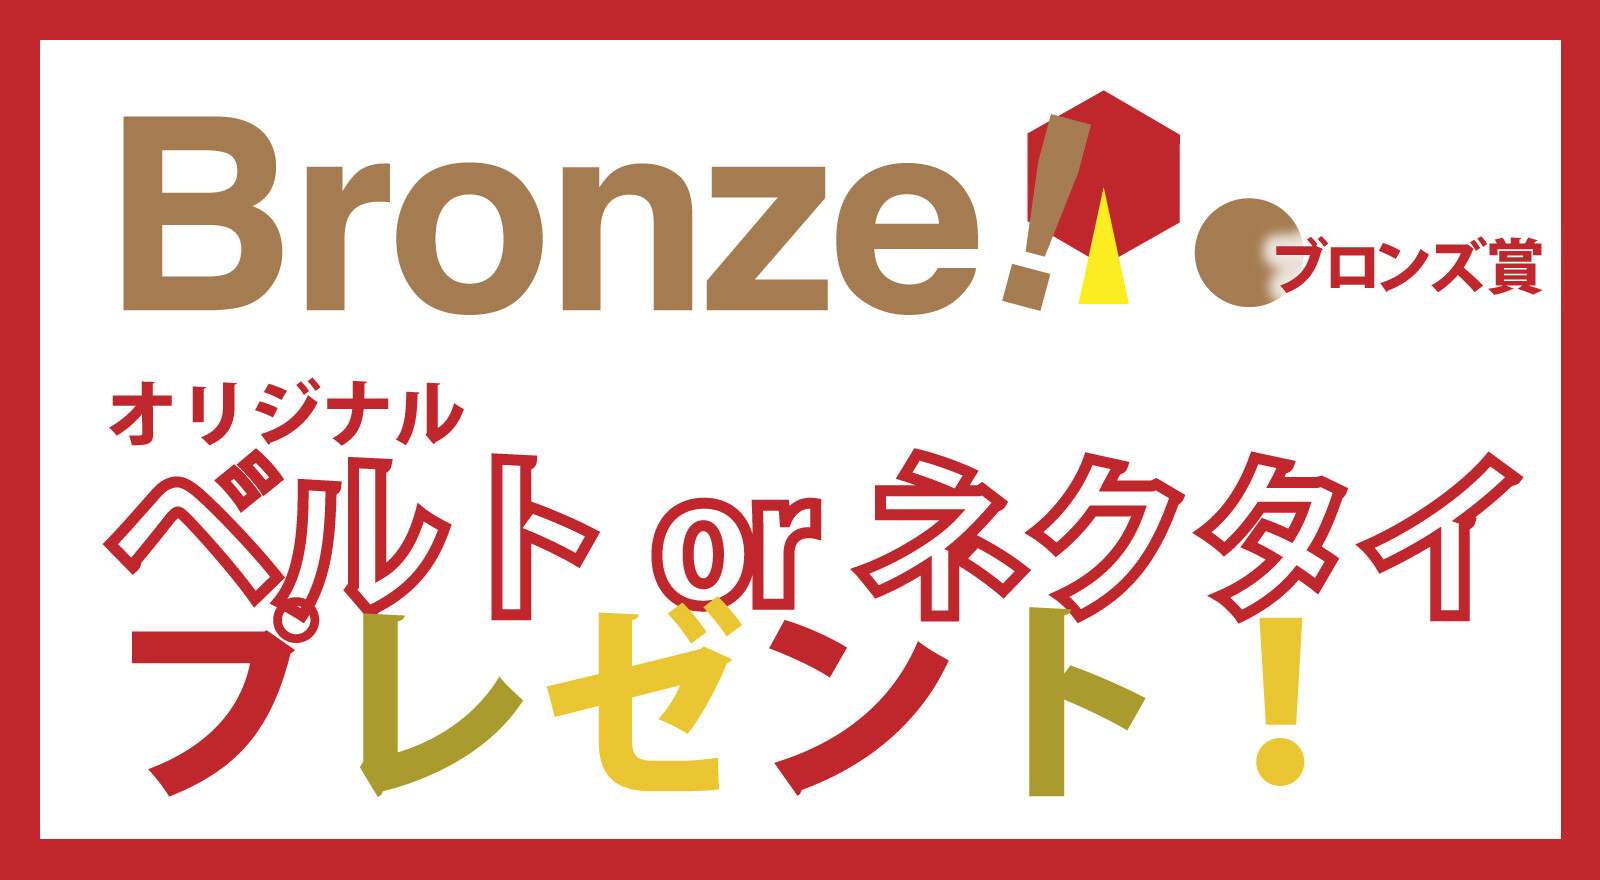 2021 garapon bronze01 - New Year ガラポン